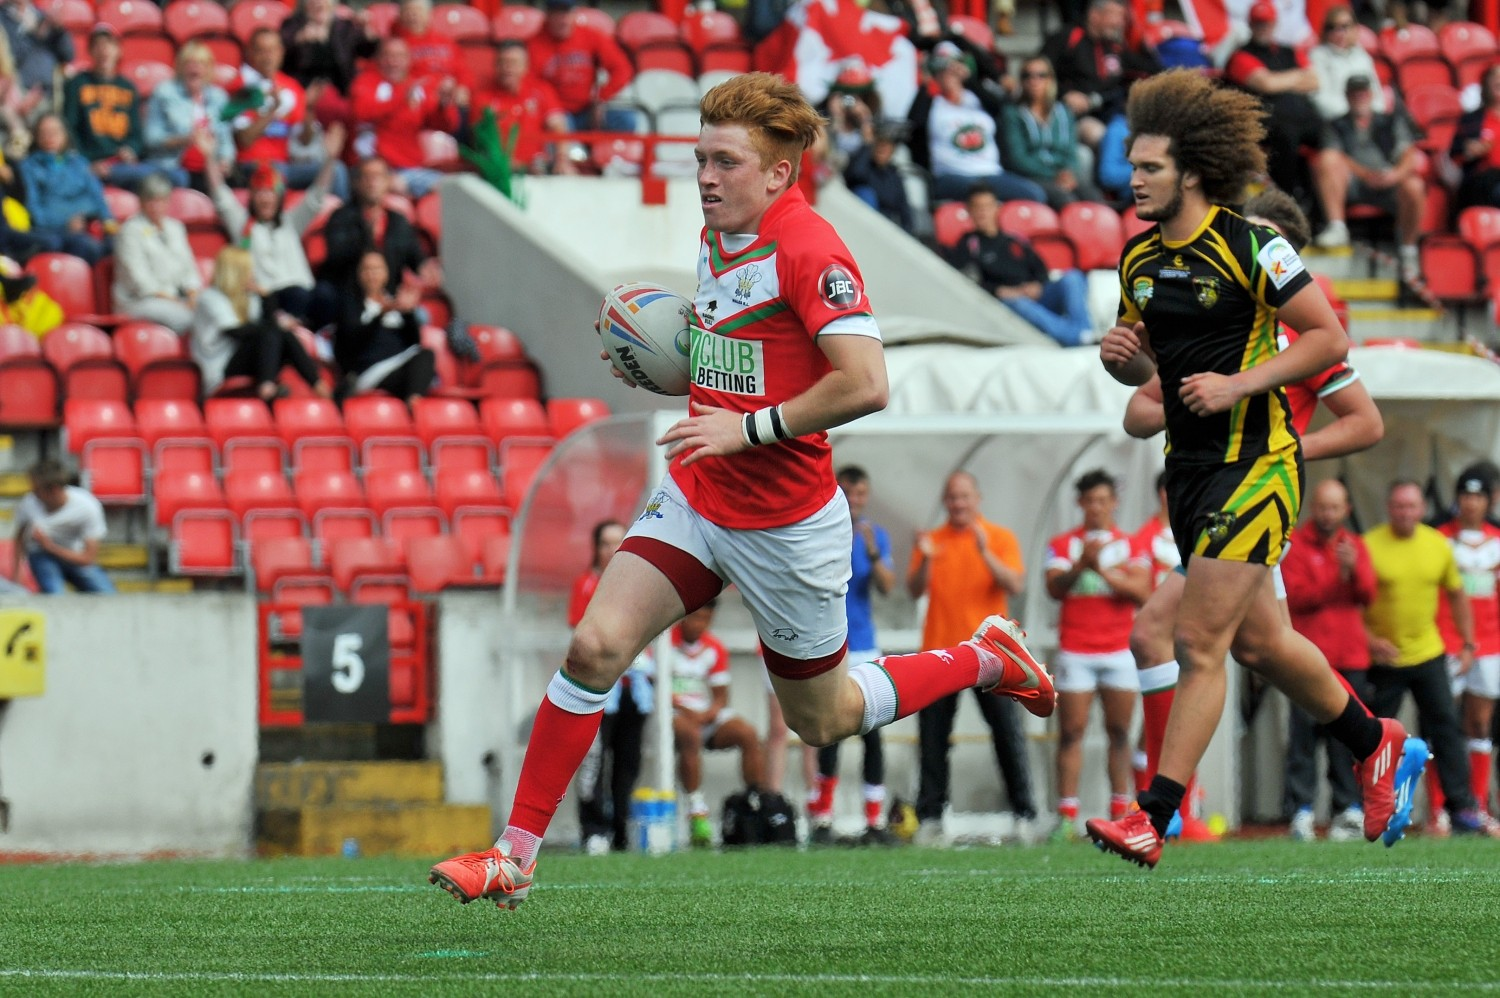 Wales name team for Commonwealth Championship